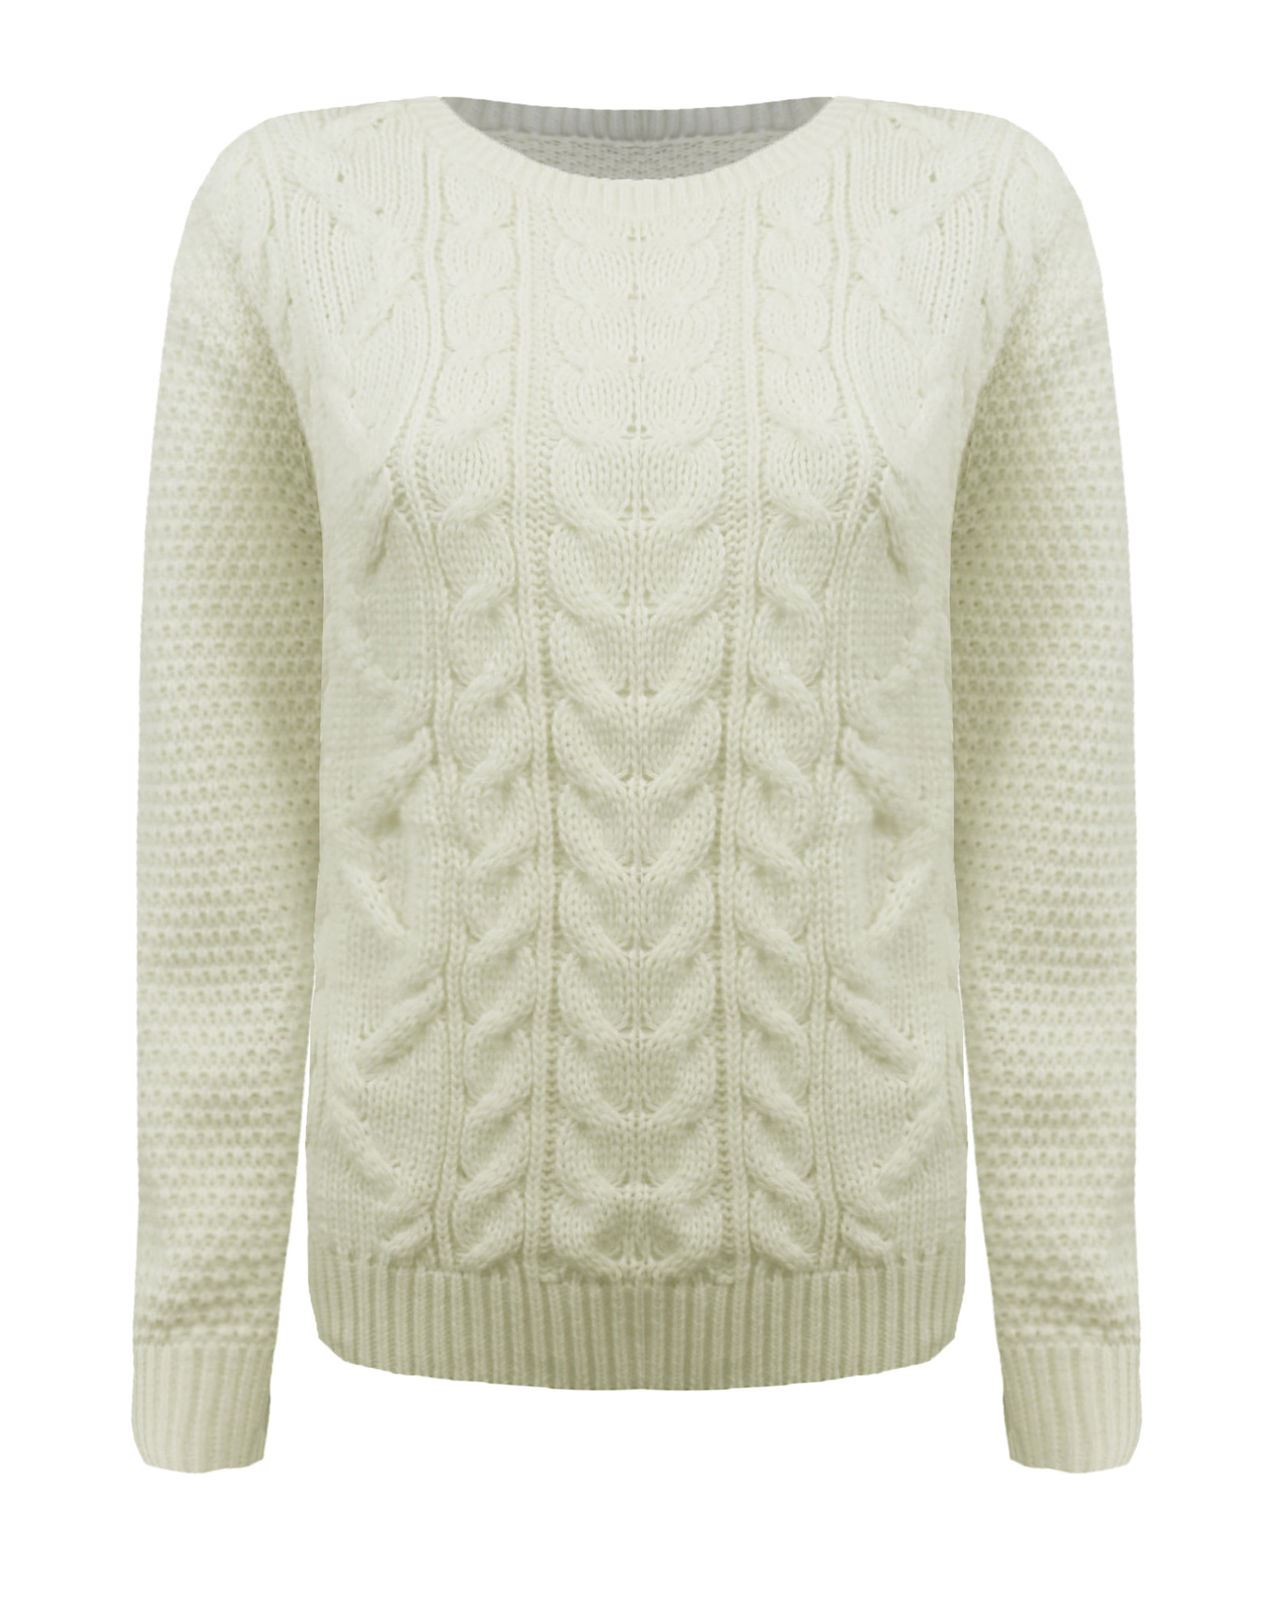 Find great deals on eBay for ladies cable knit sweater. Shop with confidence.